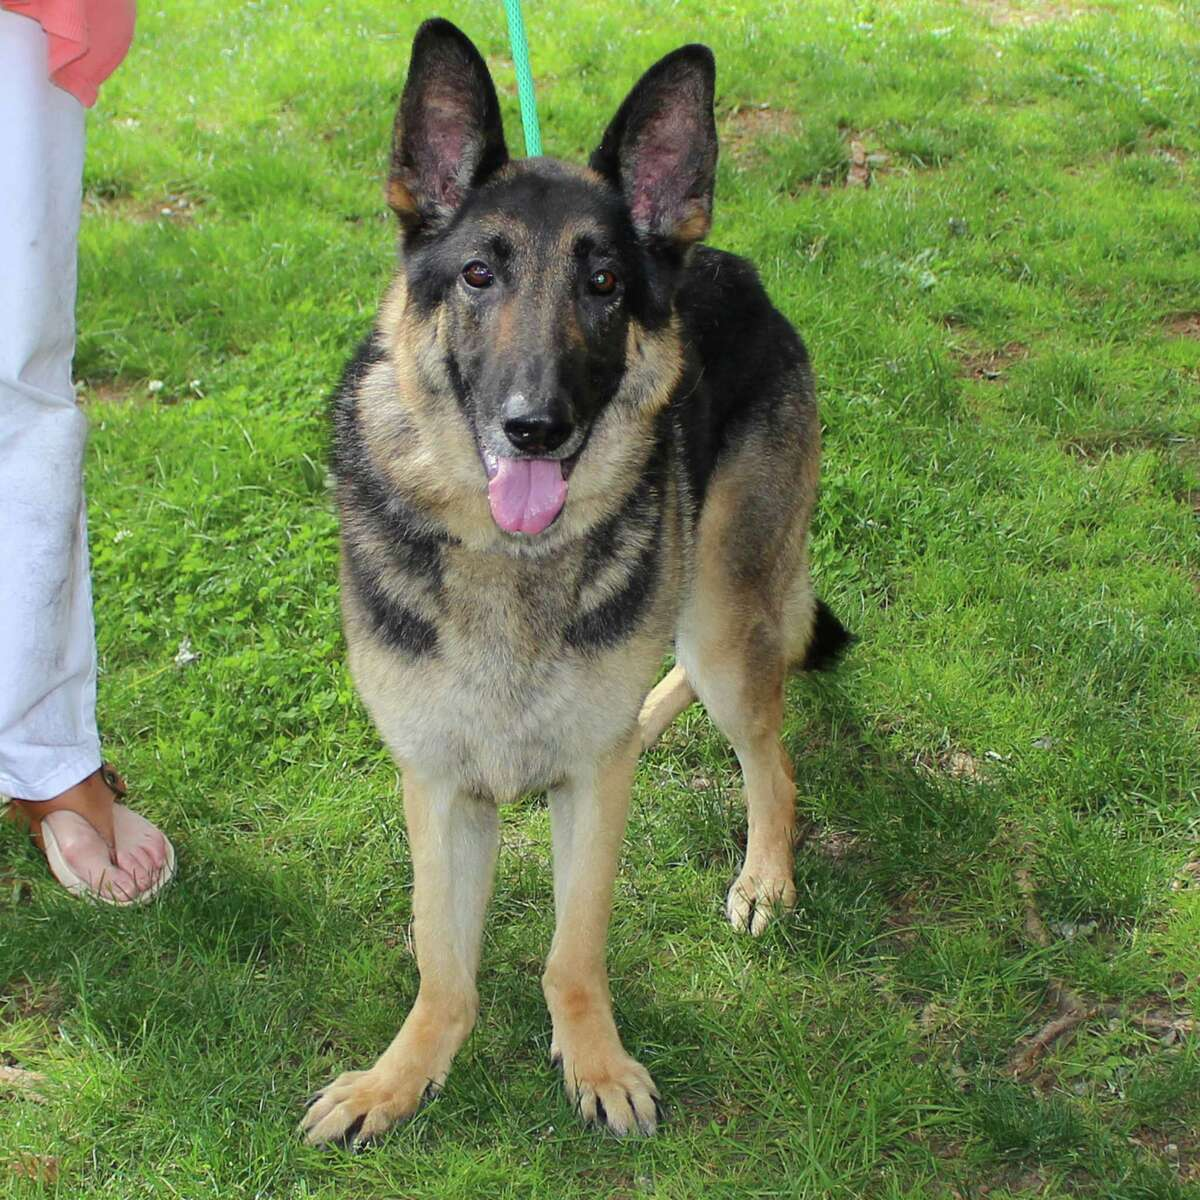 """Our """"Dog of the Week"""" is the extremely handsome Tacoma (a.k.a. Taco), a 6-year-old neutered male German shepherd who loves to go out to the yard and play fetch with tennis balls. He could possibly live with older children and perhaps another dog who is mellow and non-reactive. For more info, call Adopt-A-Dog at 203-629-9494 or visit www.adoptadog.org"""